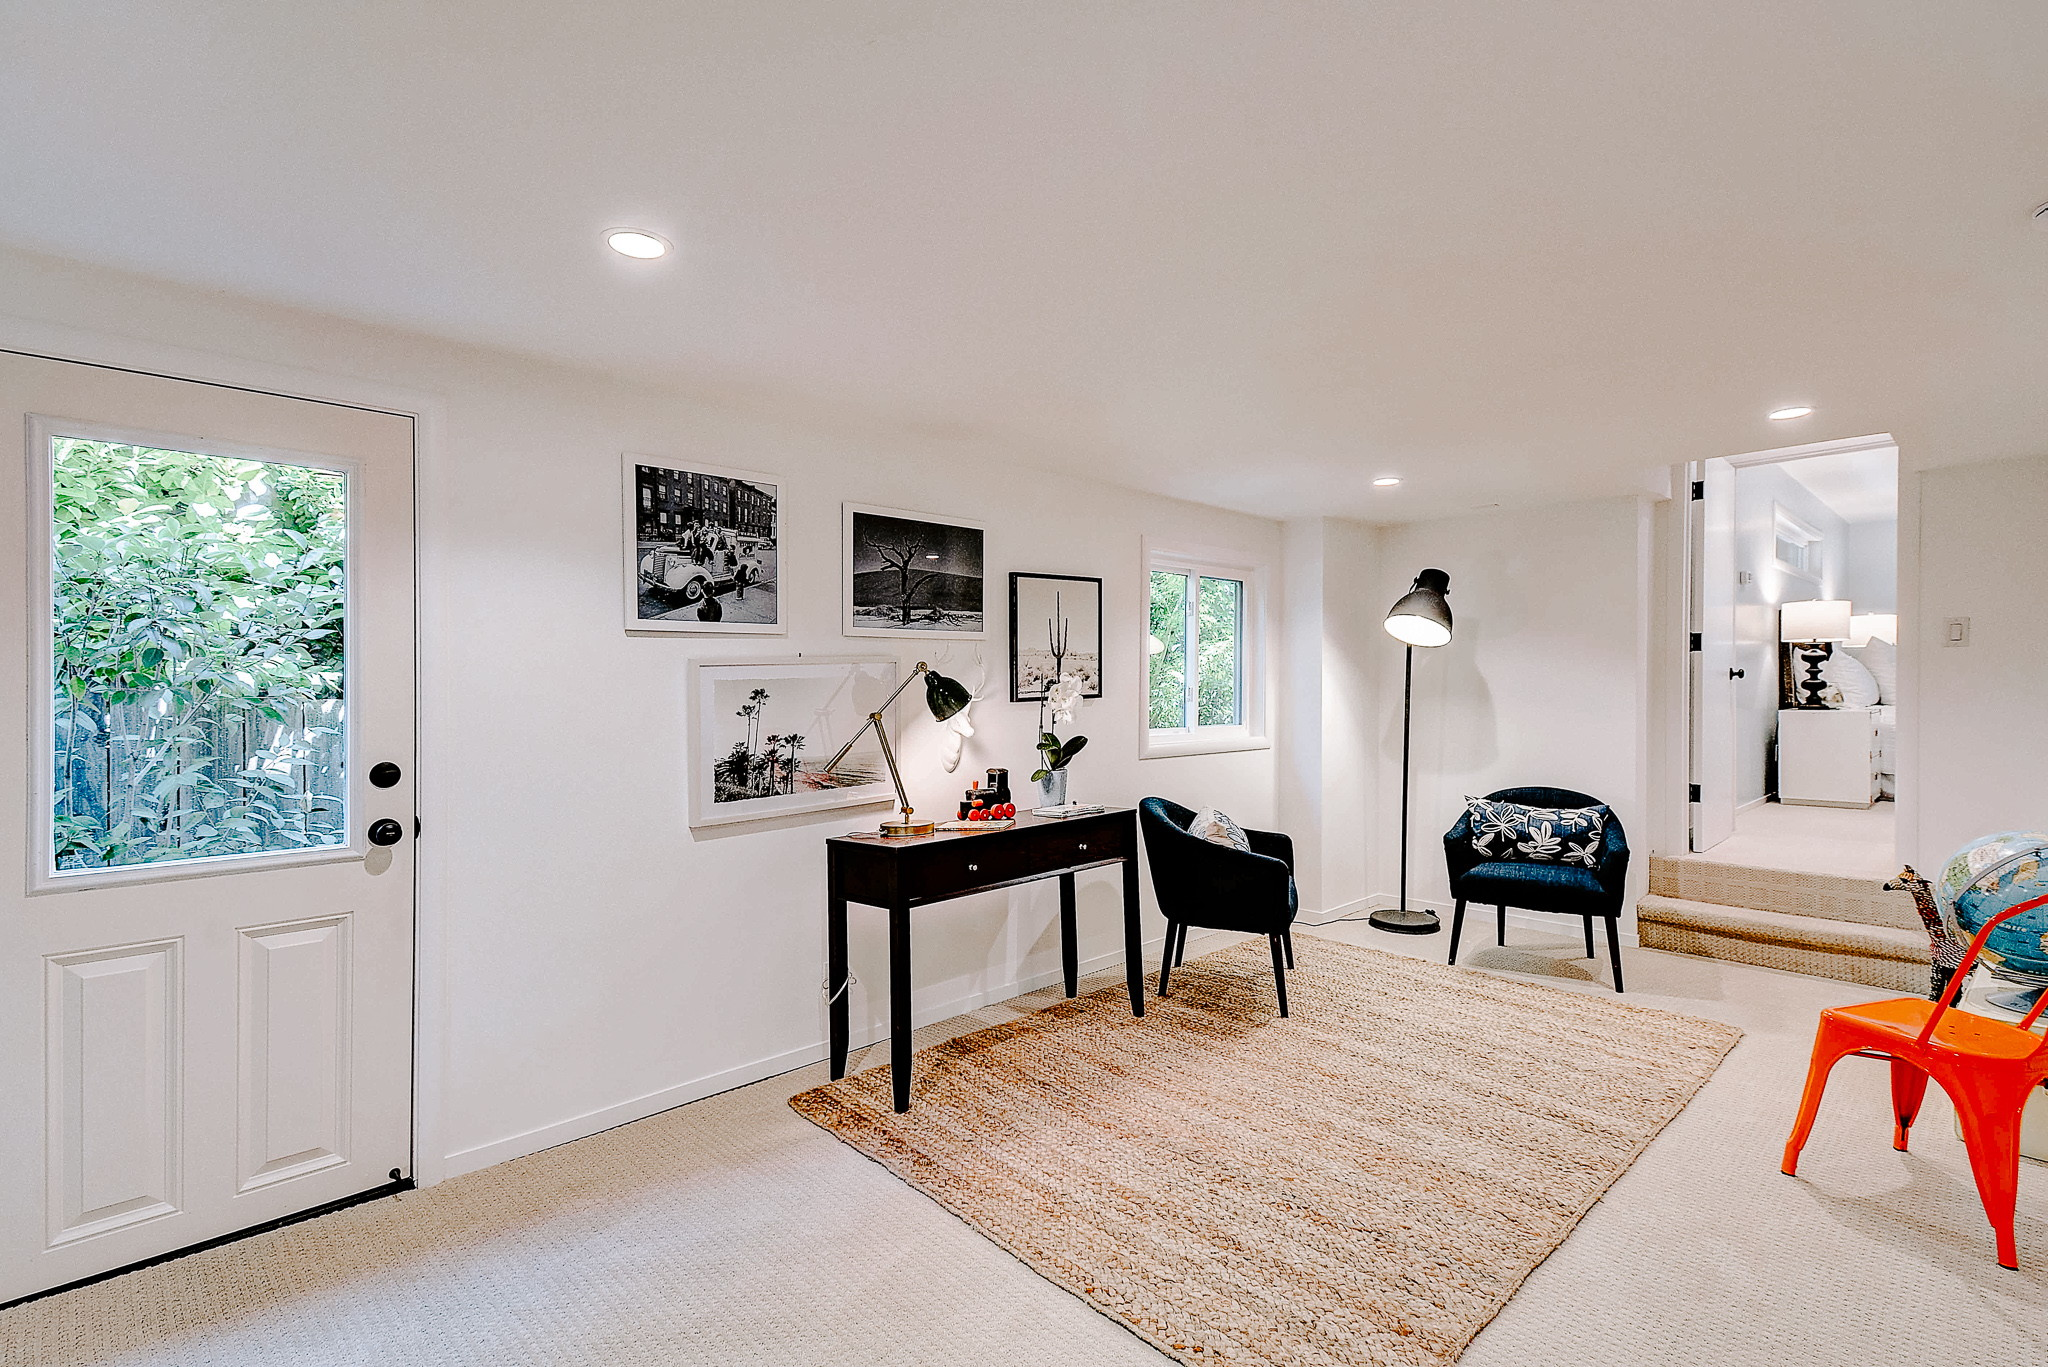 210 Bretano Way-59Greenbrae Real Estate - Listed by Team Own Marin County .jpg